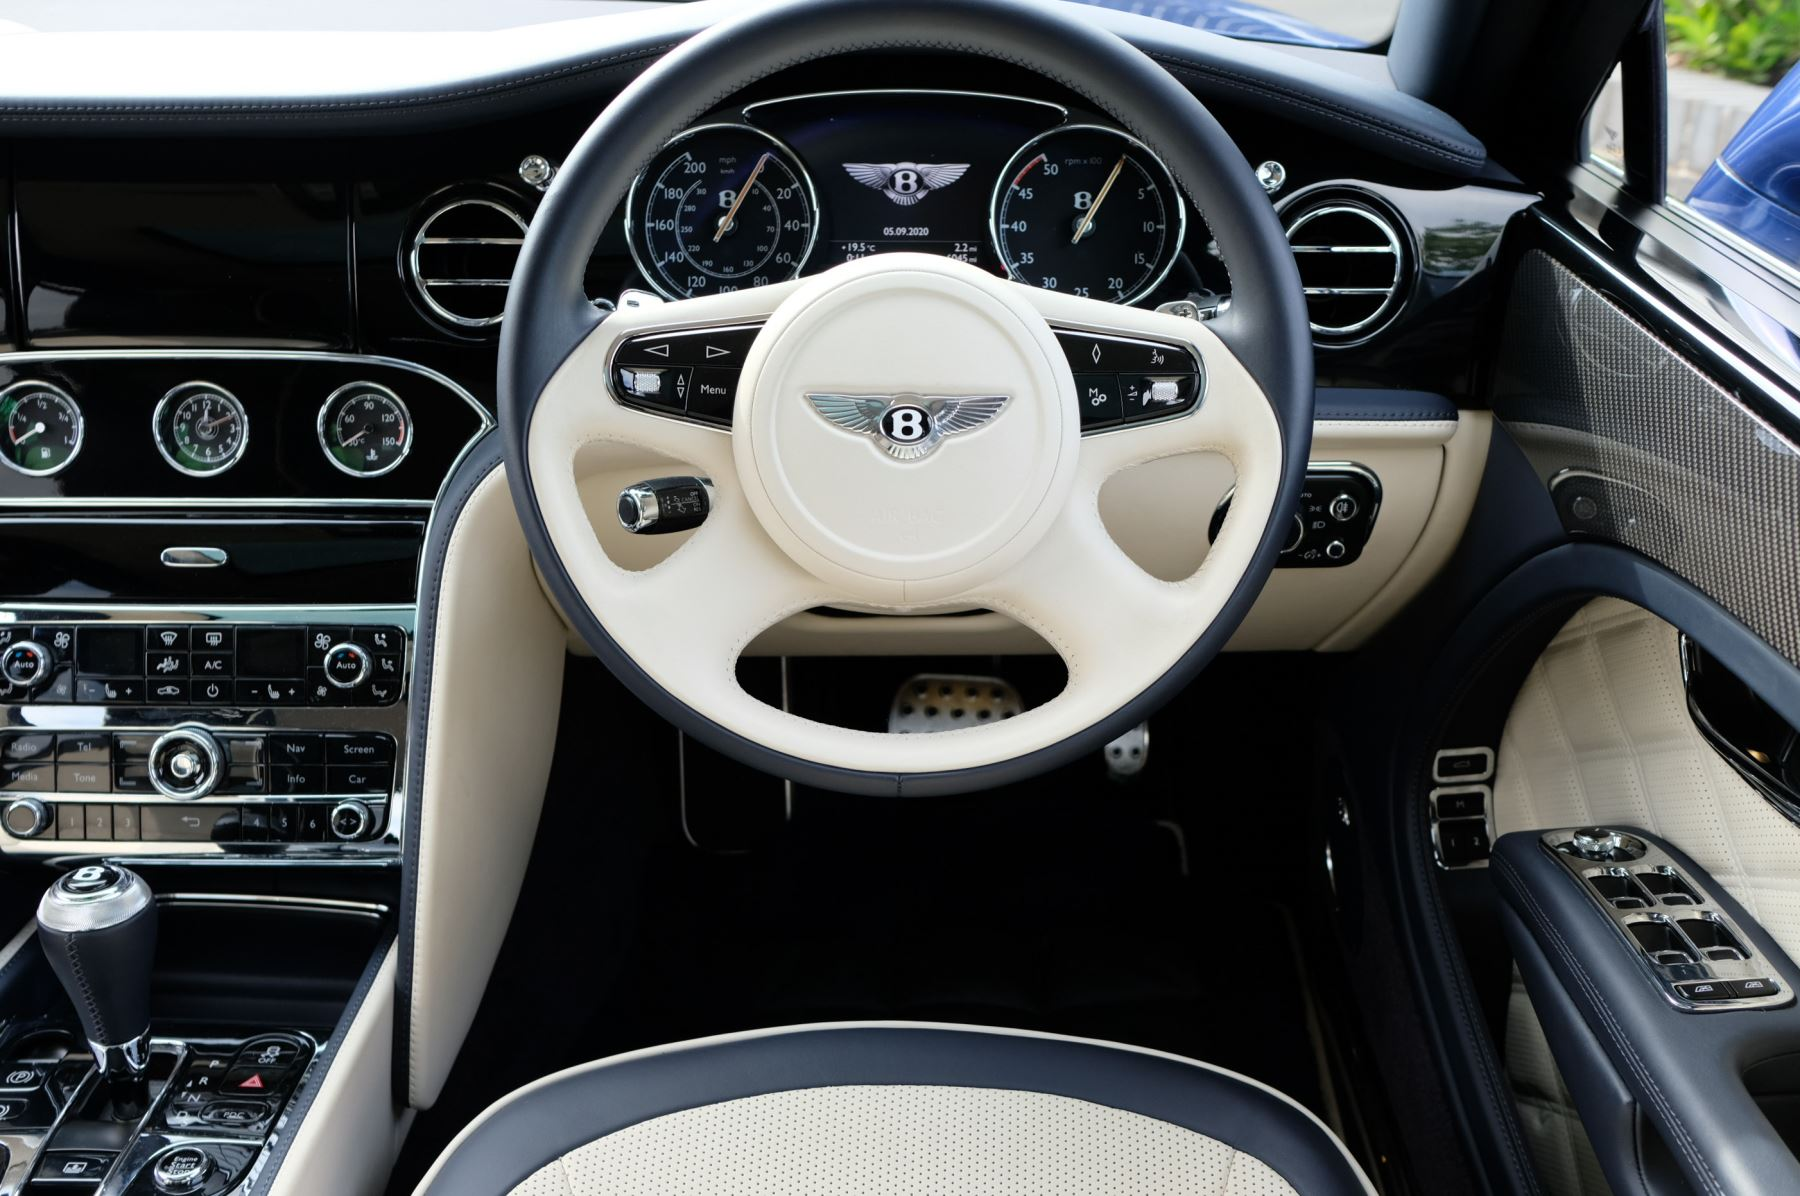 Bentley Mulsanne Speed 6.8 V8 Speed - Speed Premier and Entertainment Specification image 15